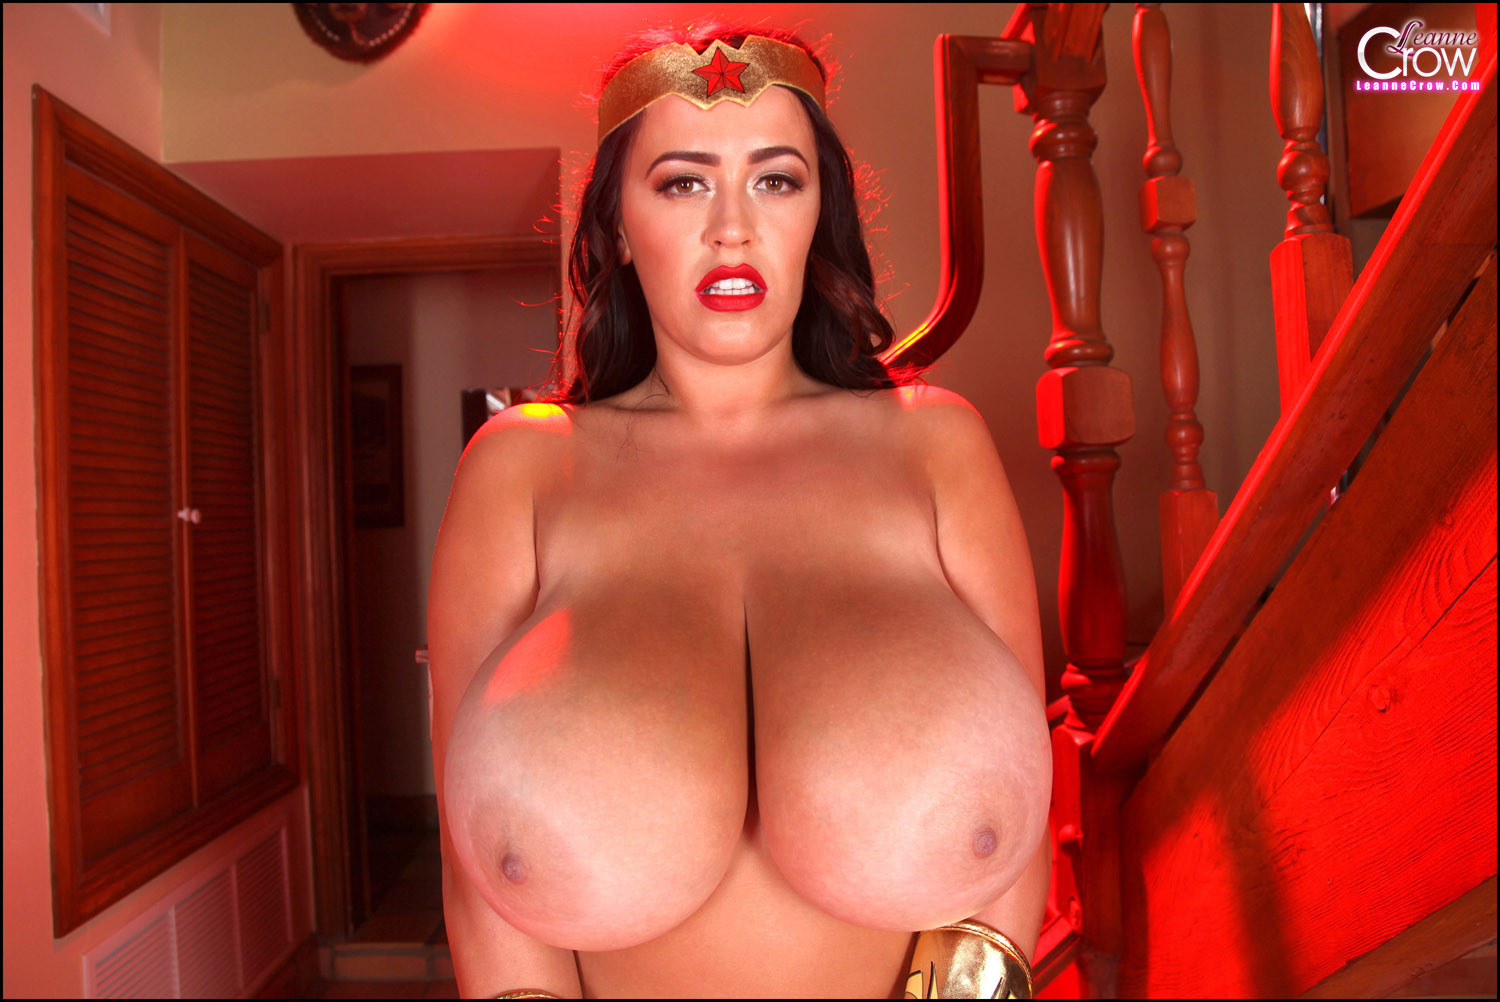 Wonder woman big tits nude pics naked online pussies